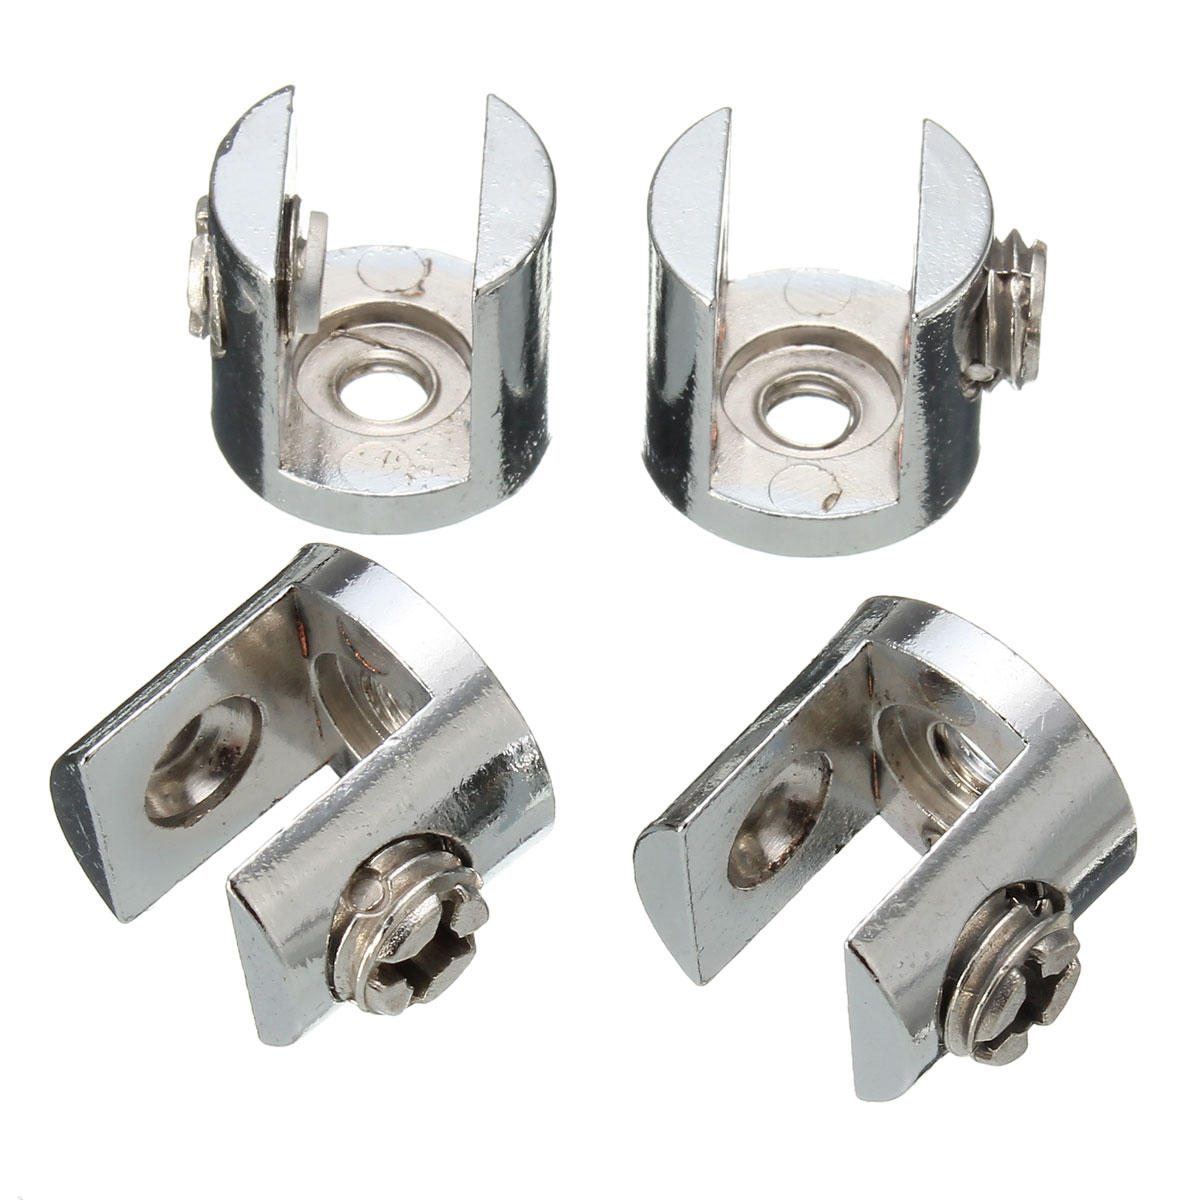 SUS Shelves Support Brackets Clamps For Glass Wooden /& Acrylic Shelves Hold